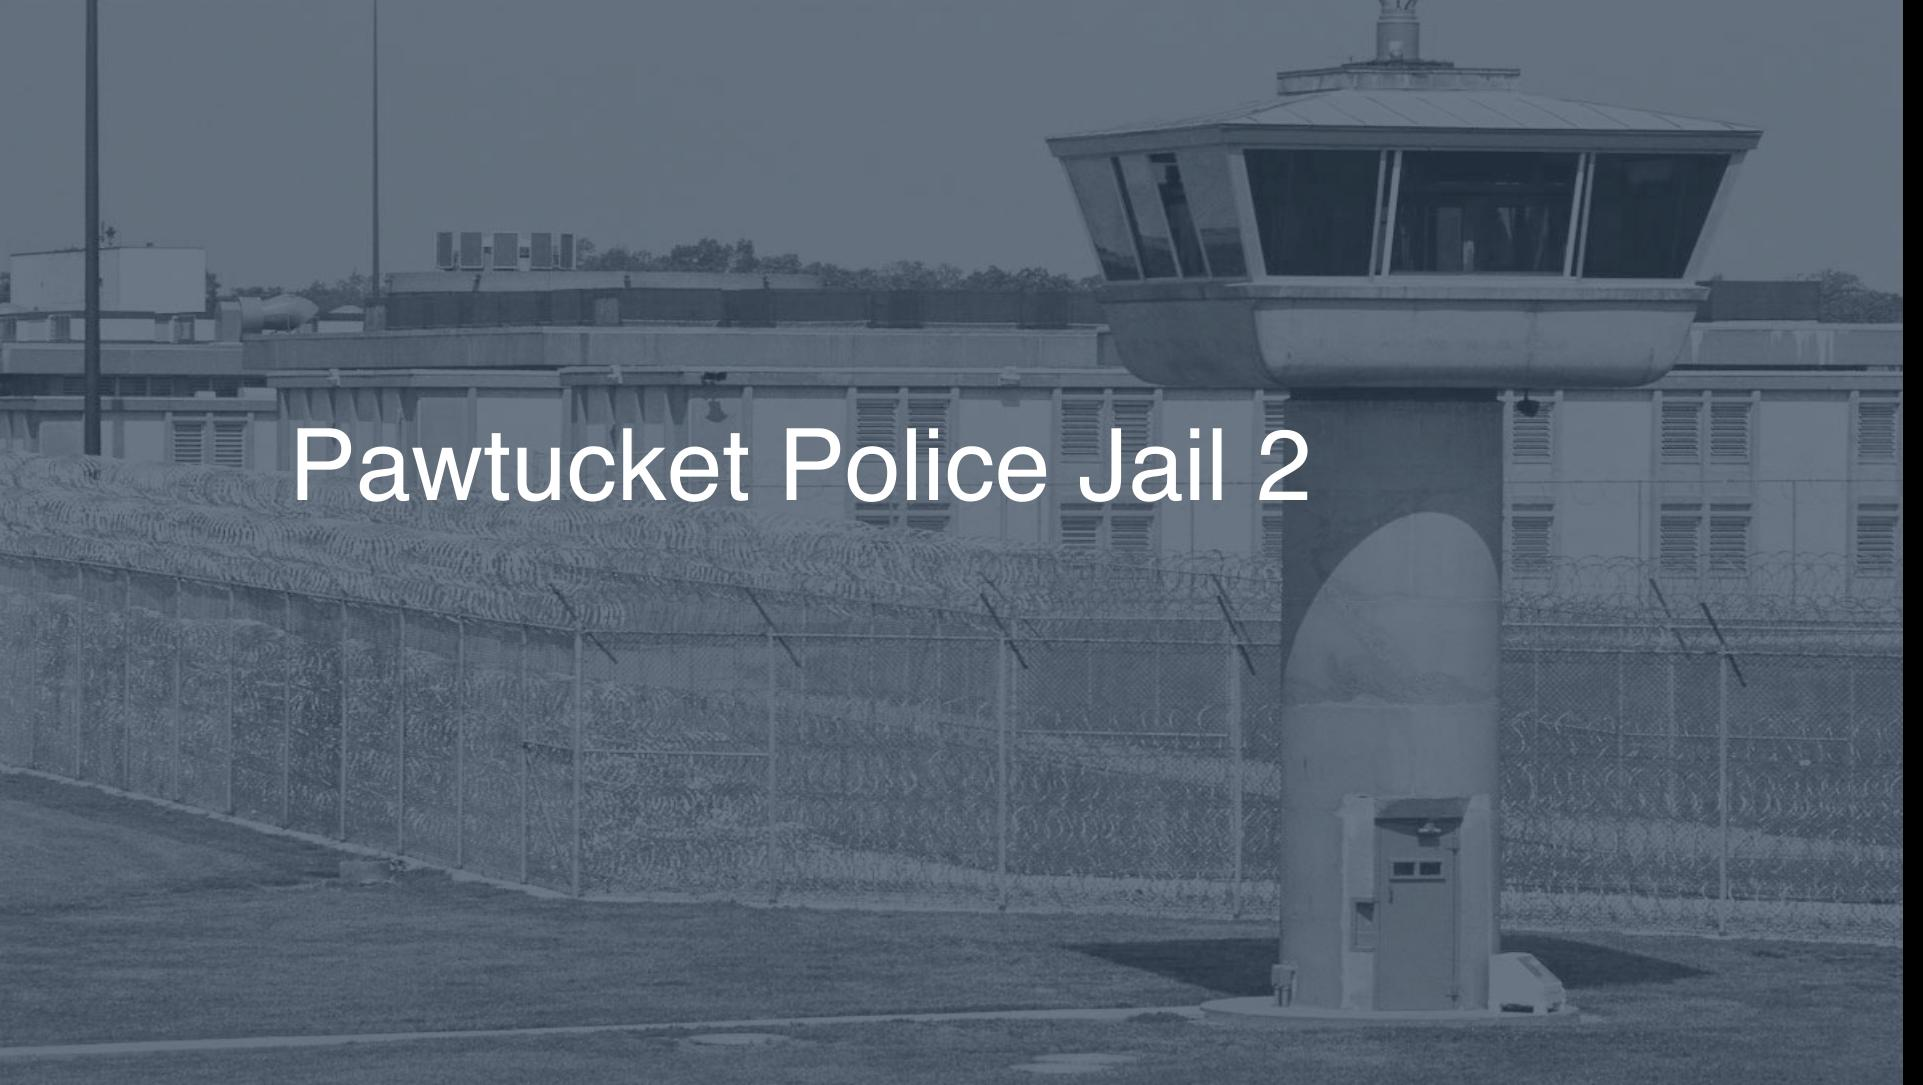 Pawtucket Police Jail correctional facility picture